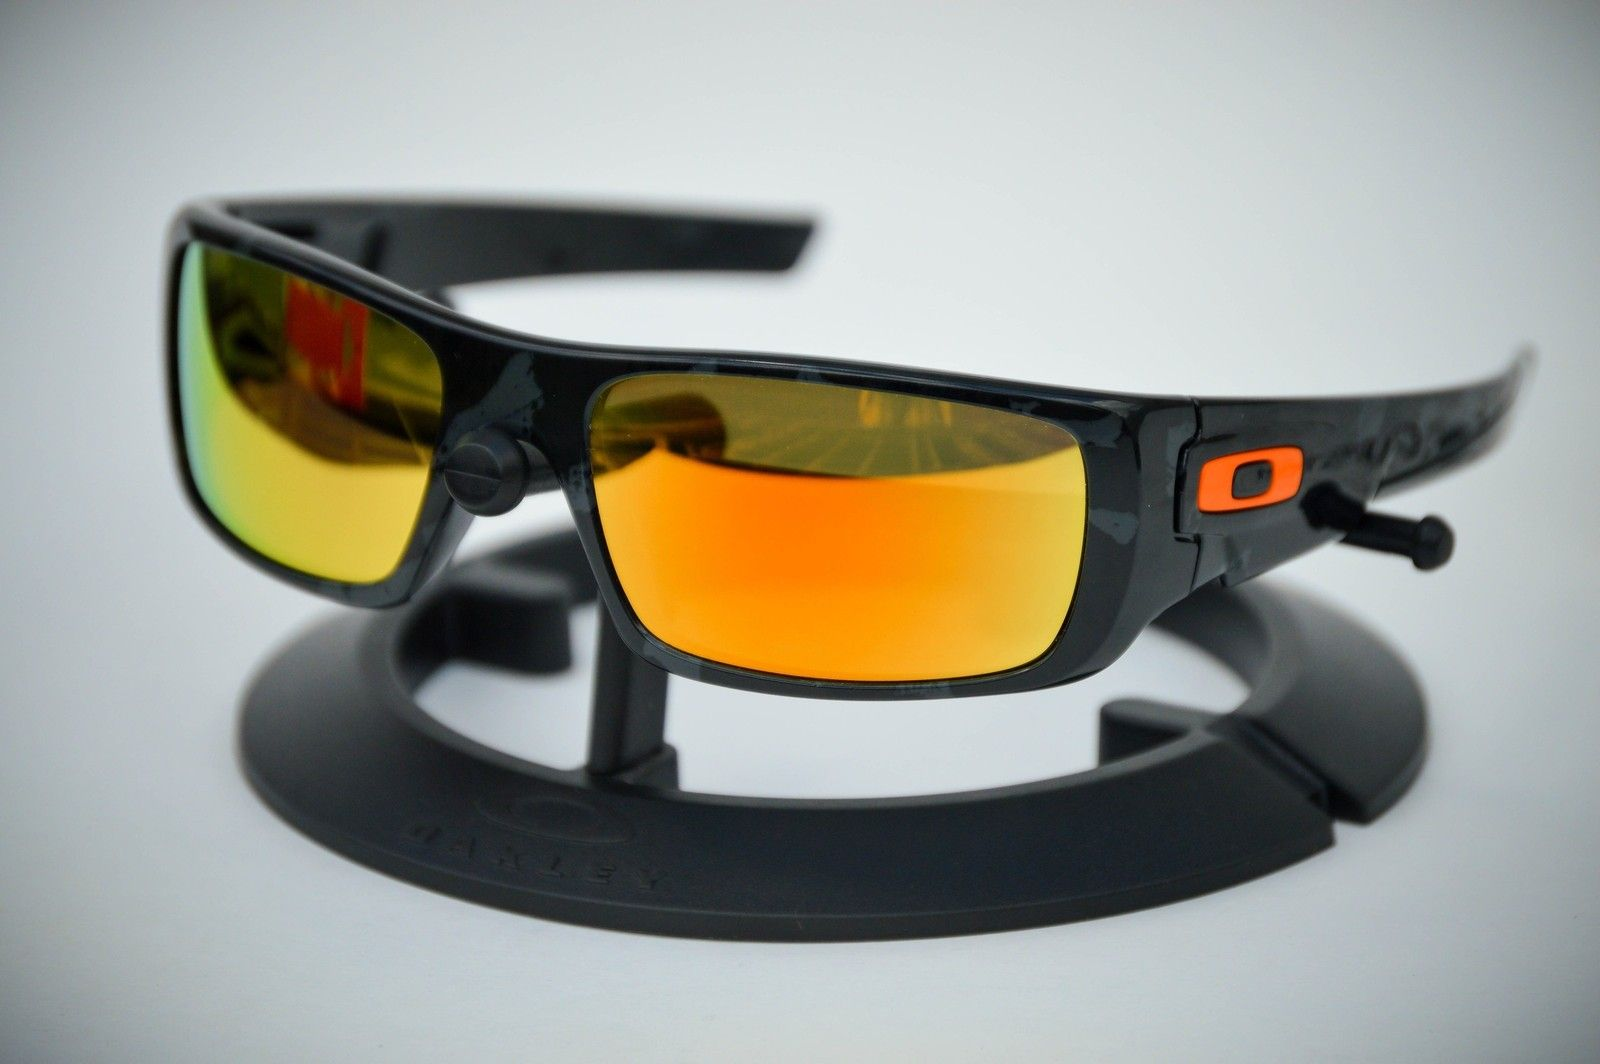 Custom Crankshaft Shadow Camo Fire irid/Orange Icons $115 - yIoAIuJ.jpg